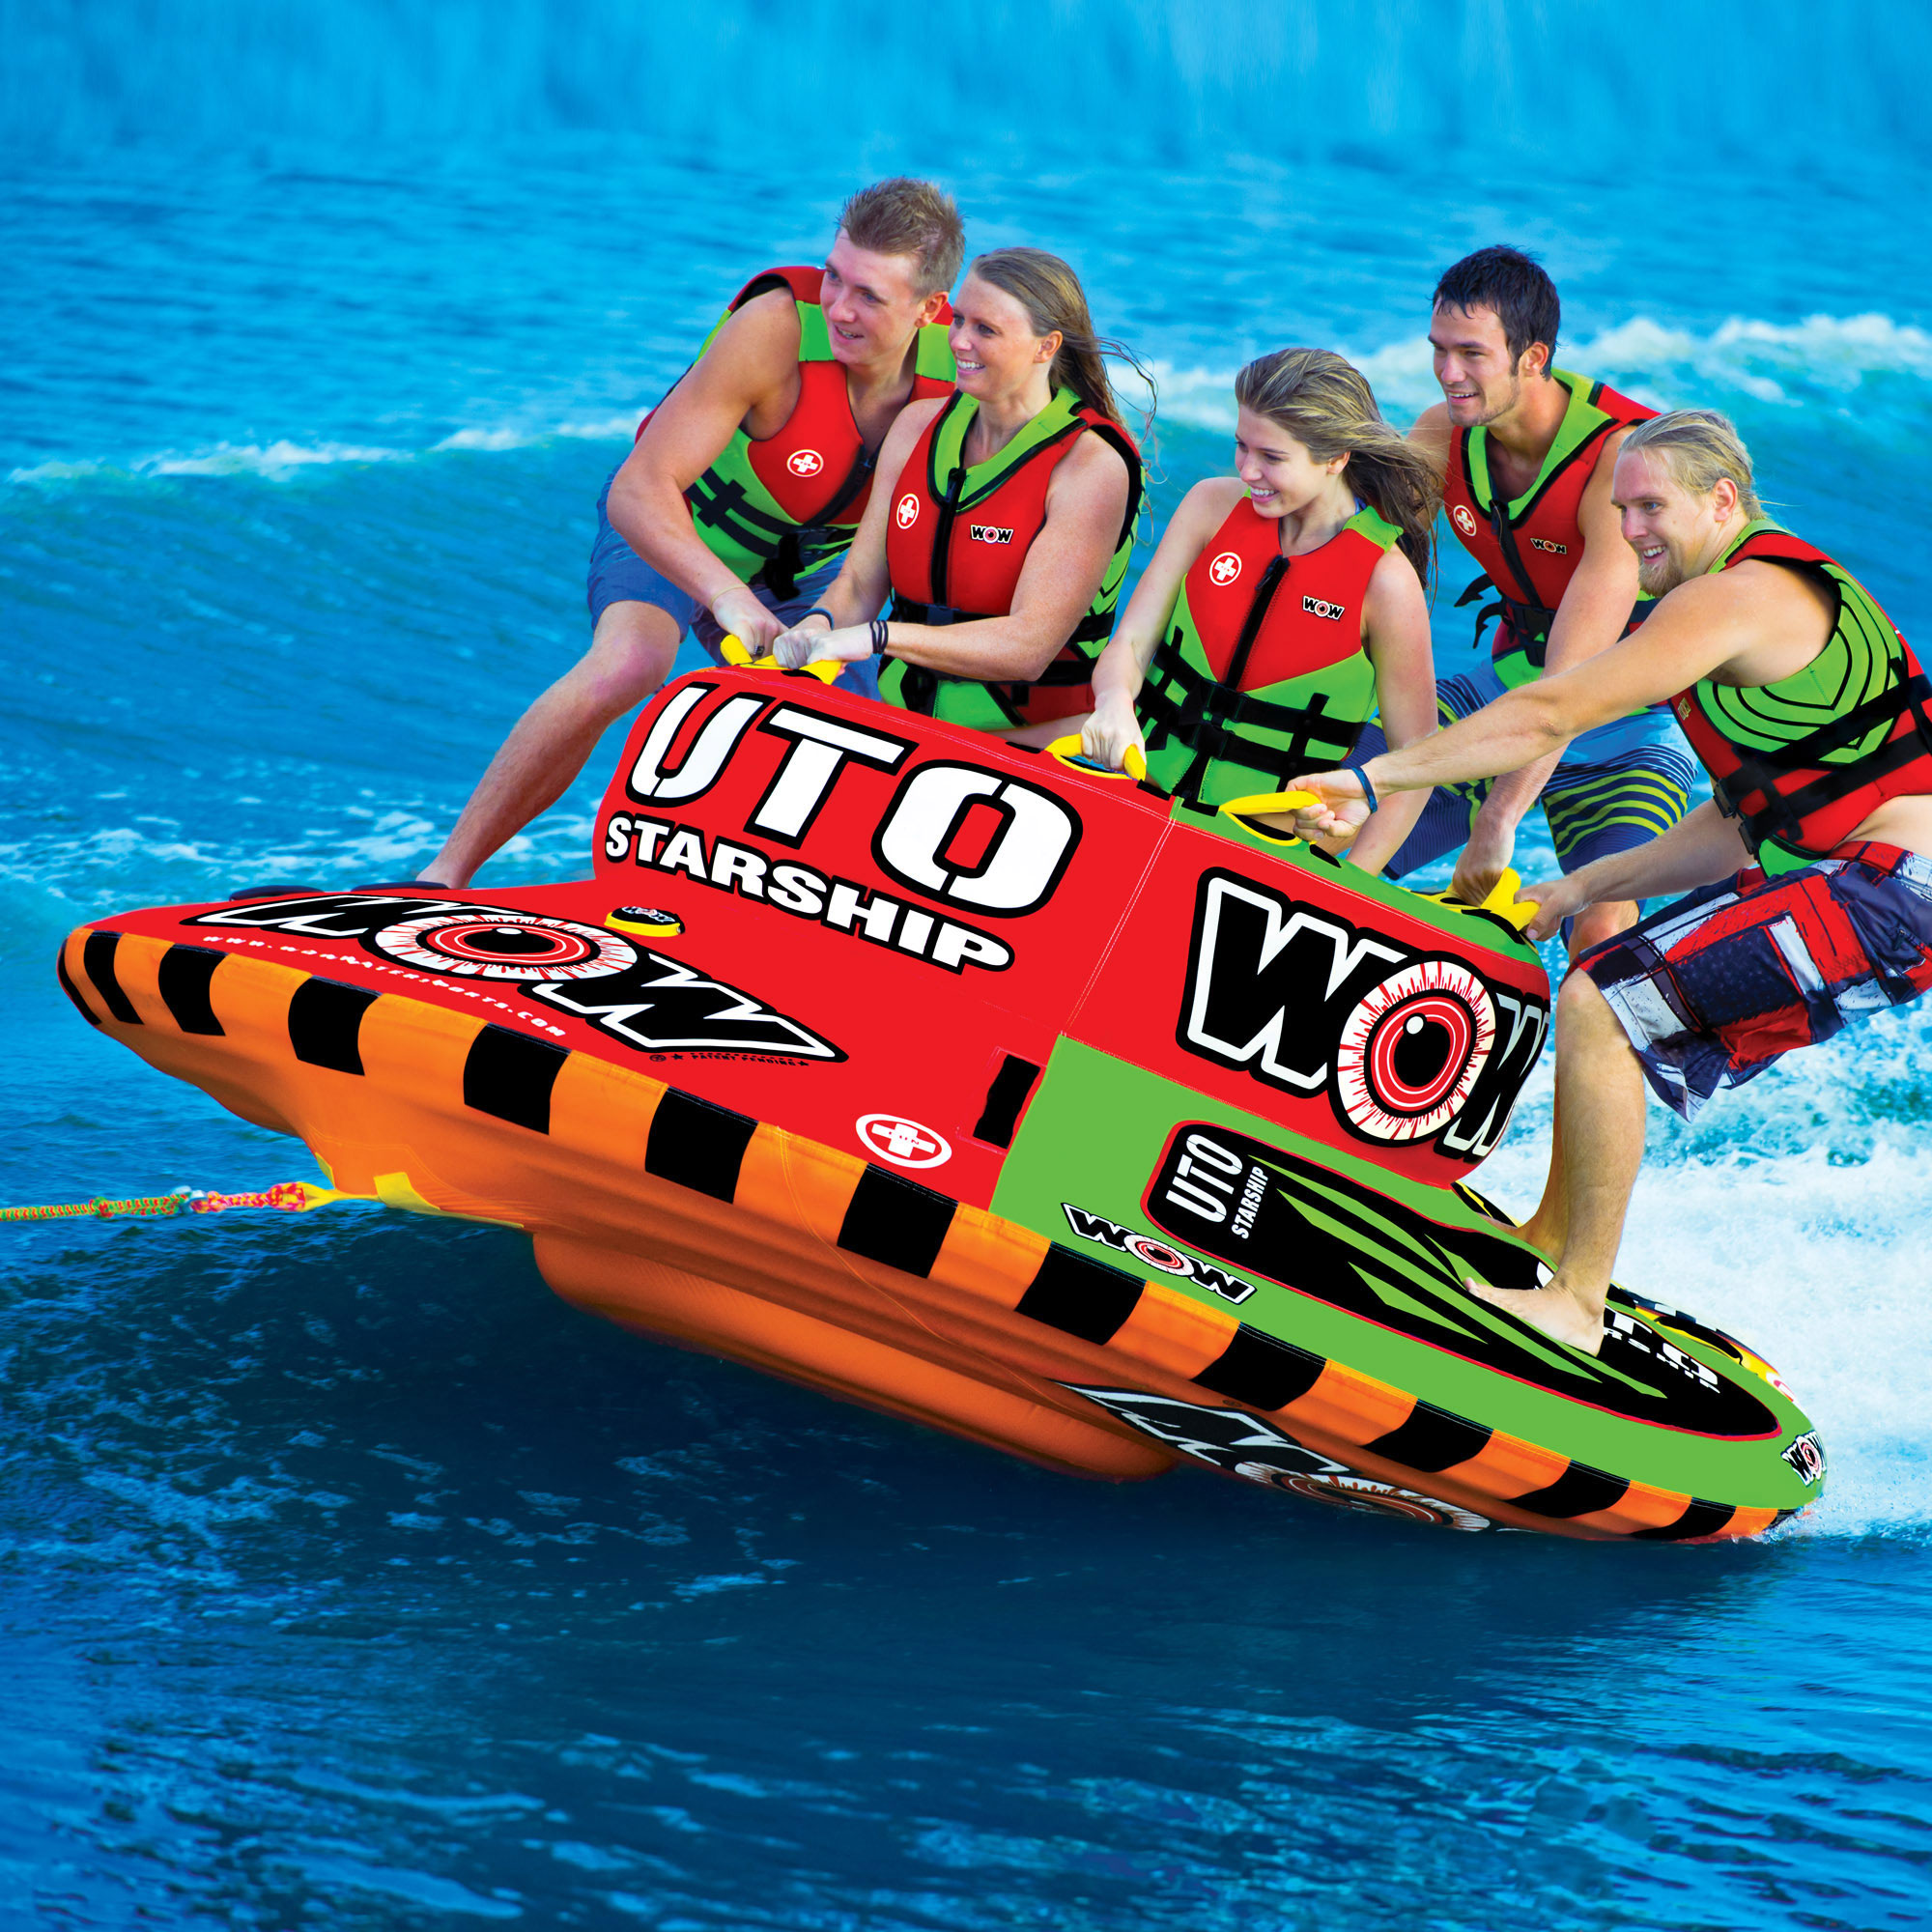 WOW World of Watersports UTO towable